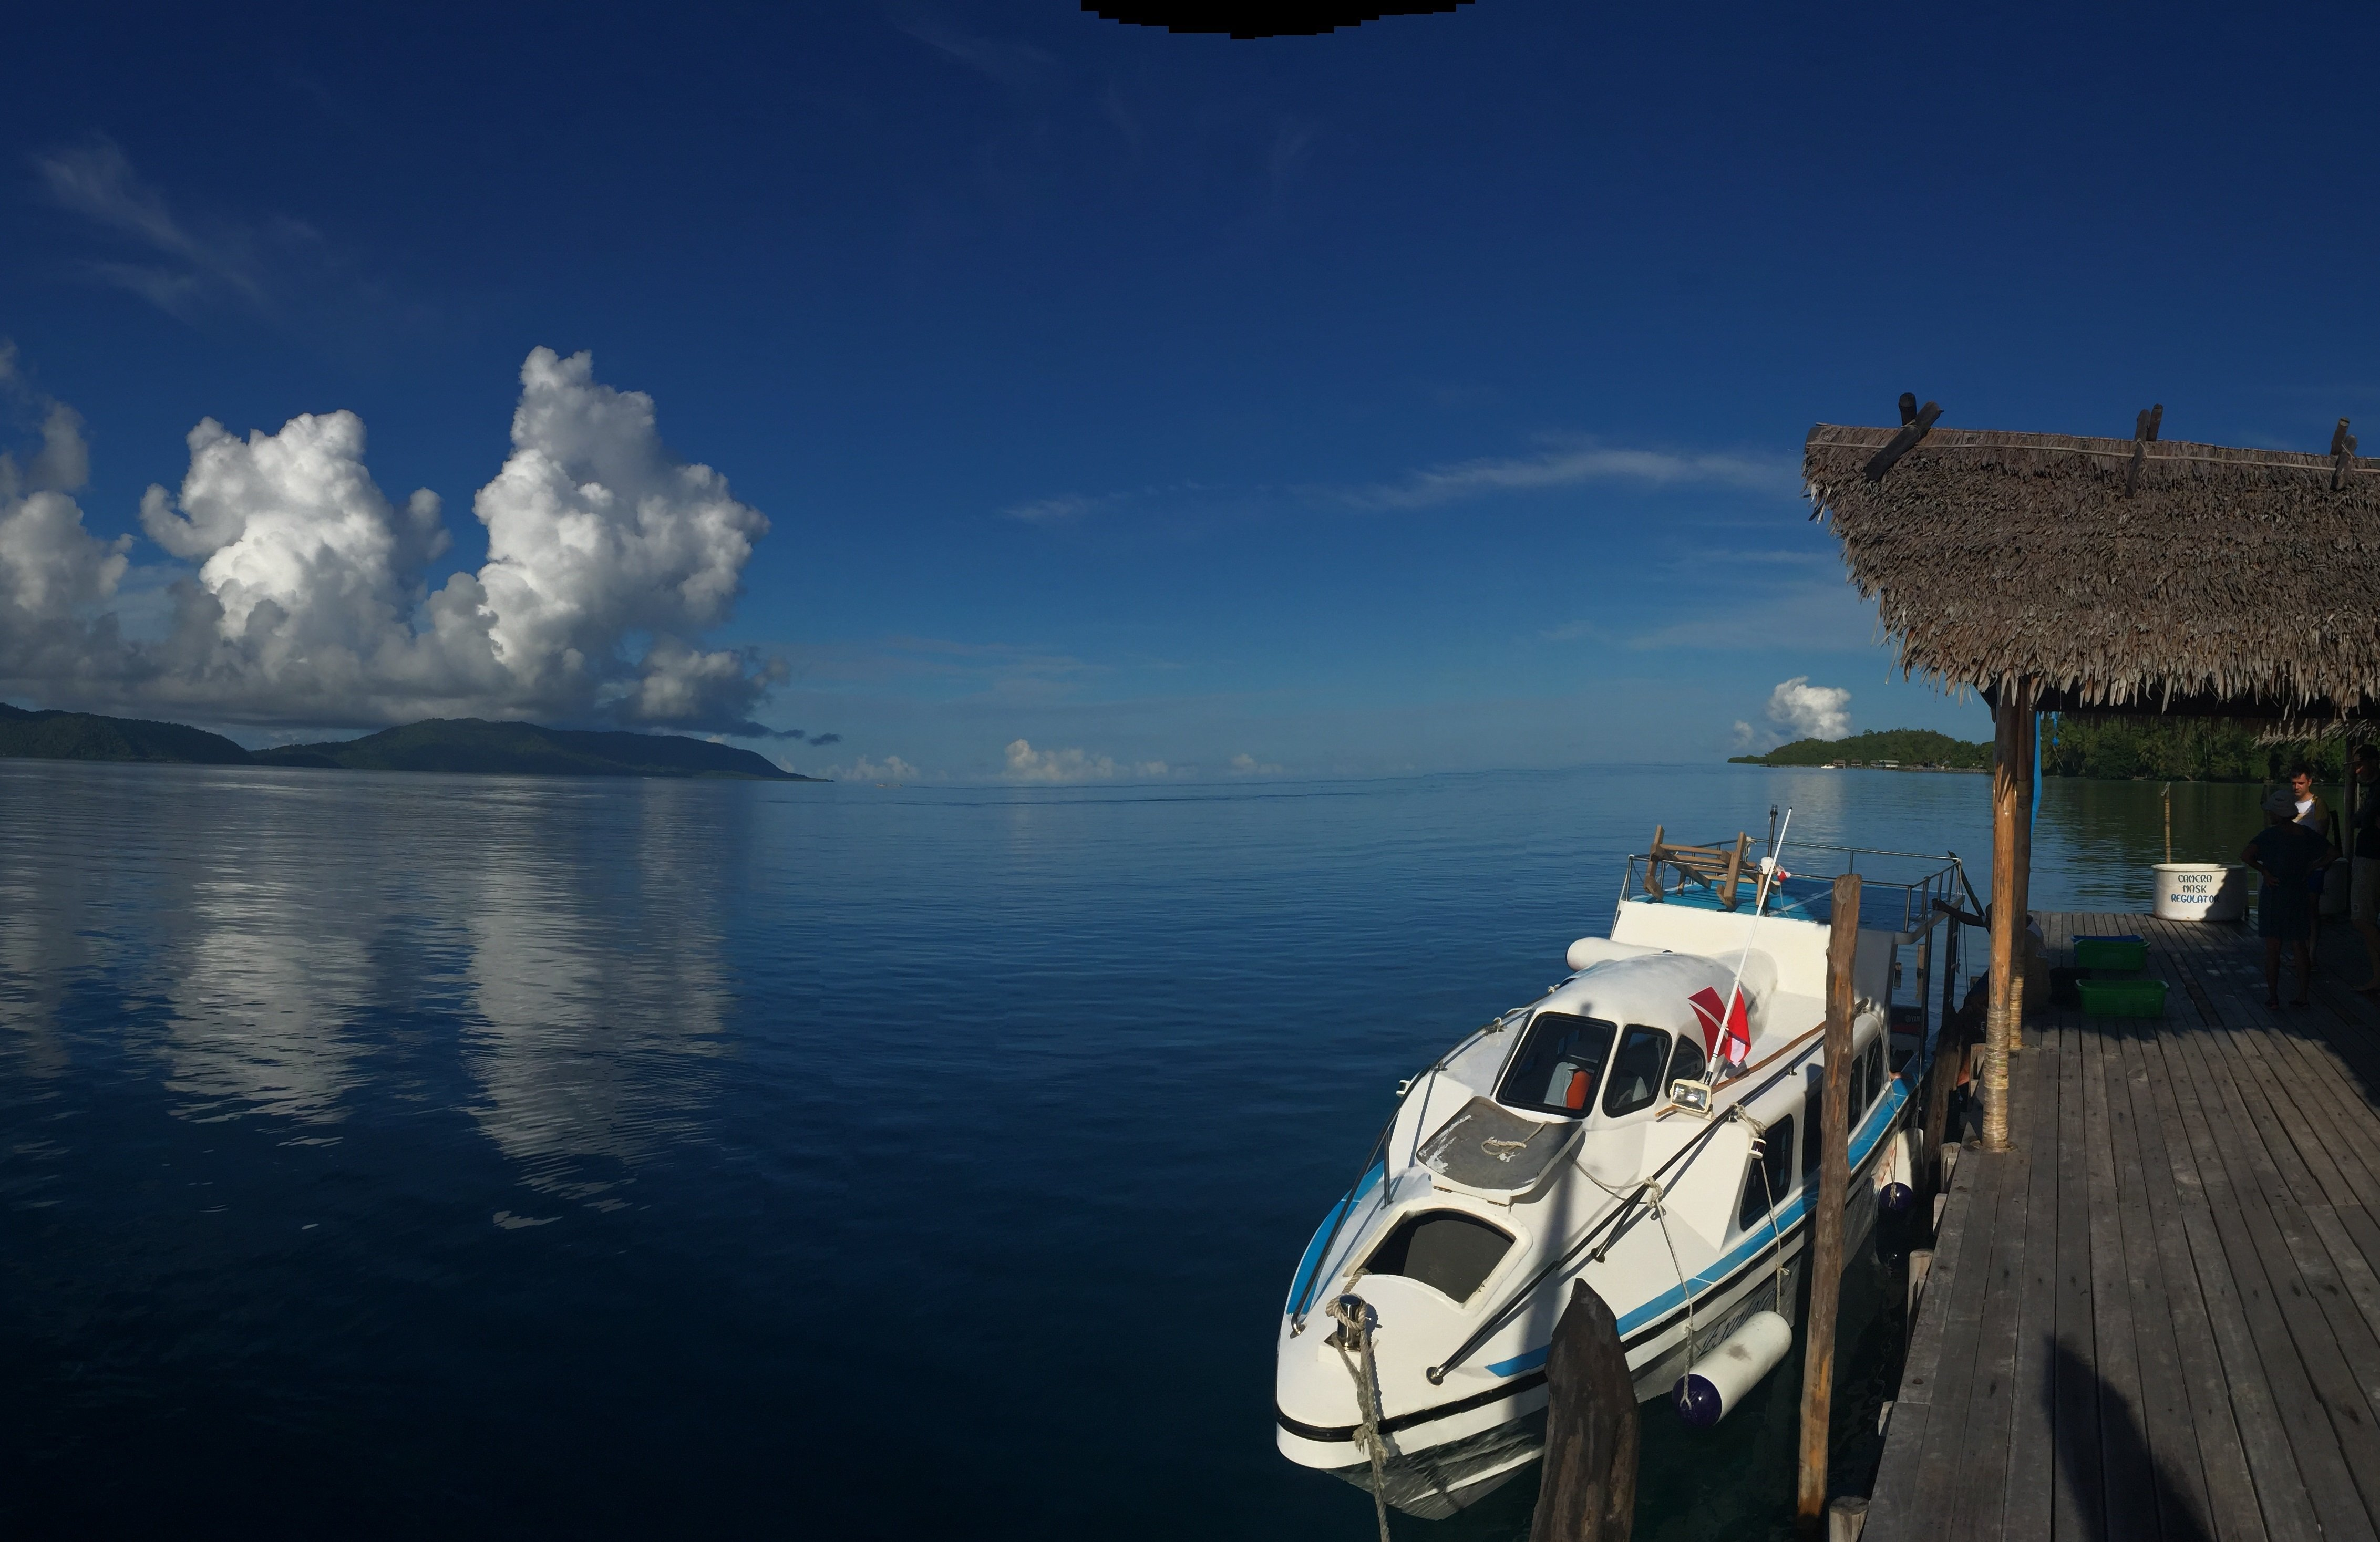 A Dive and Transfer Boat docked at our Raja Ampat Dive Center with islands of the Dampier Straight in the back